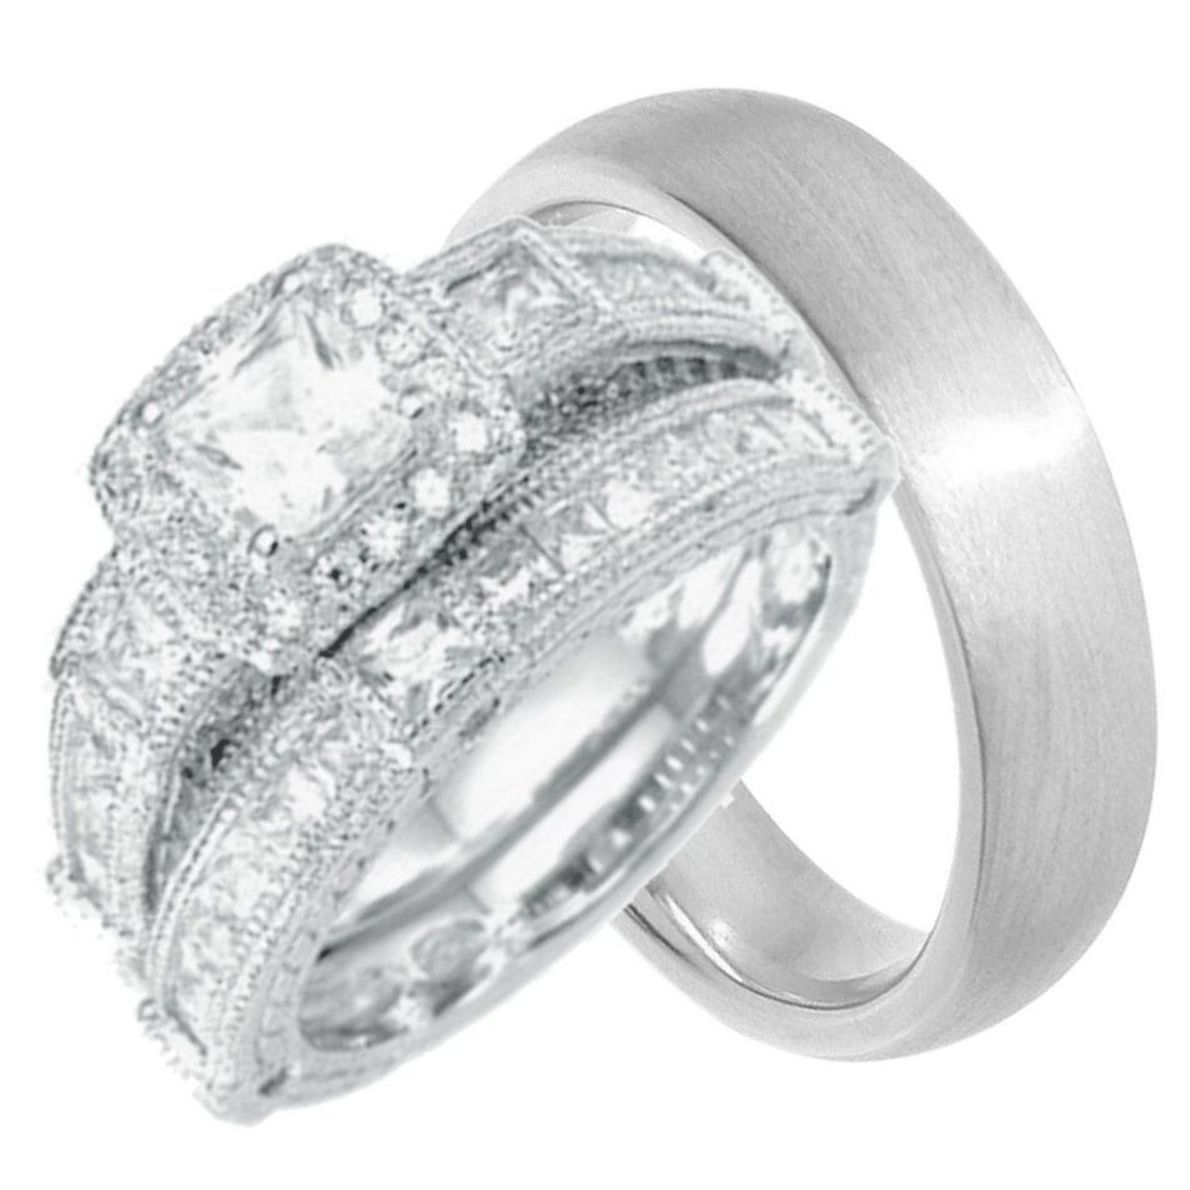 Classic His And Her Wedding Rings Set Sterling Silver Wedding Rings Sets His And Hers Wedding Ring Sets Cheap Wedding Rings Sets